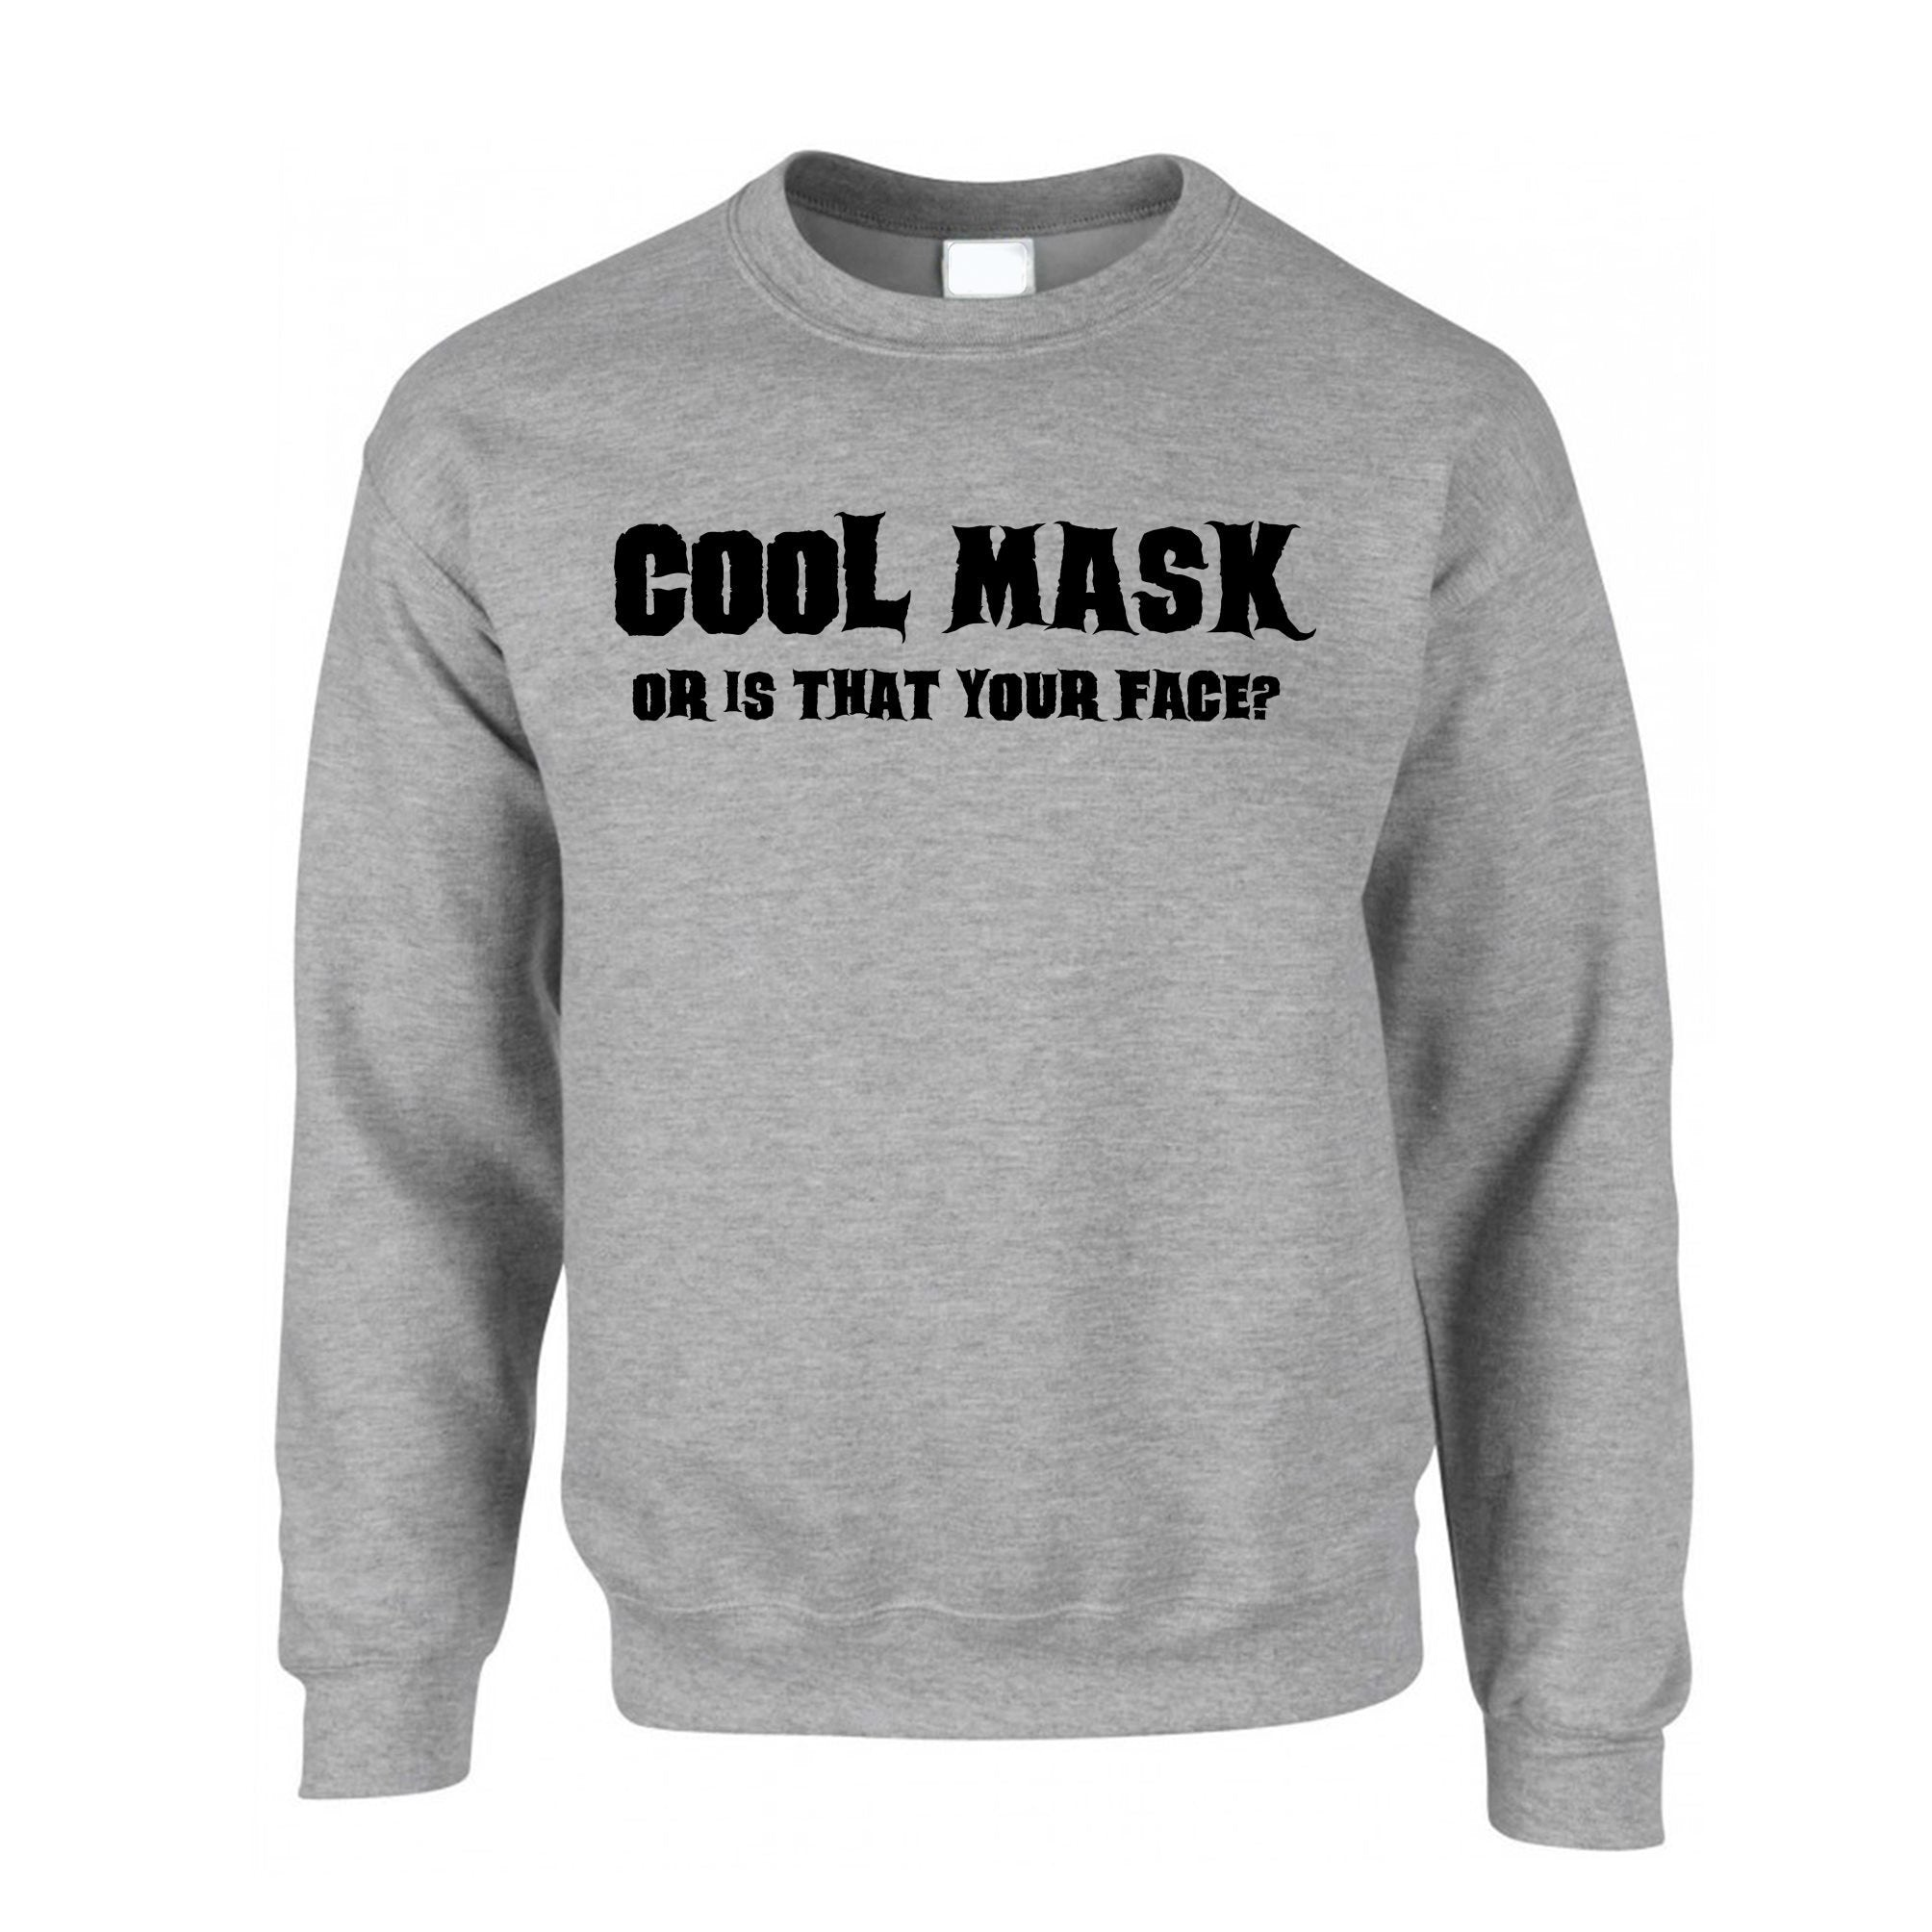 Sassy Halloween Jumper Cool Mask Or Is That Your Face Sweatshirt